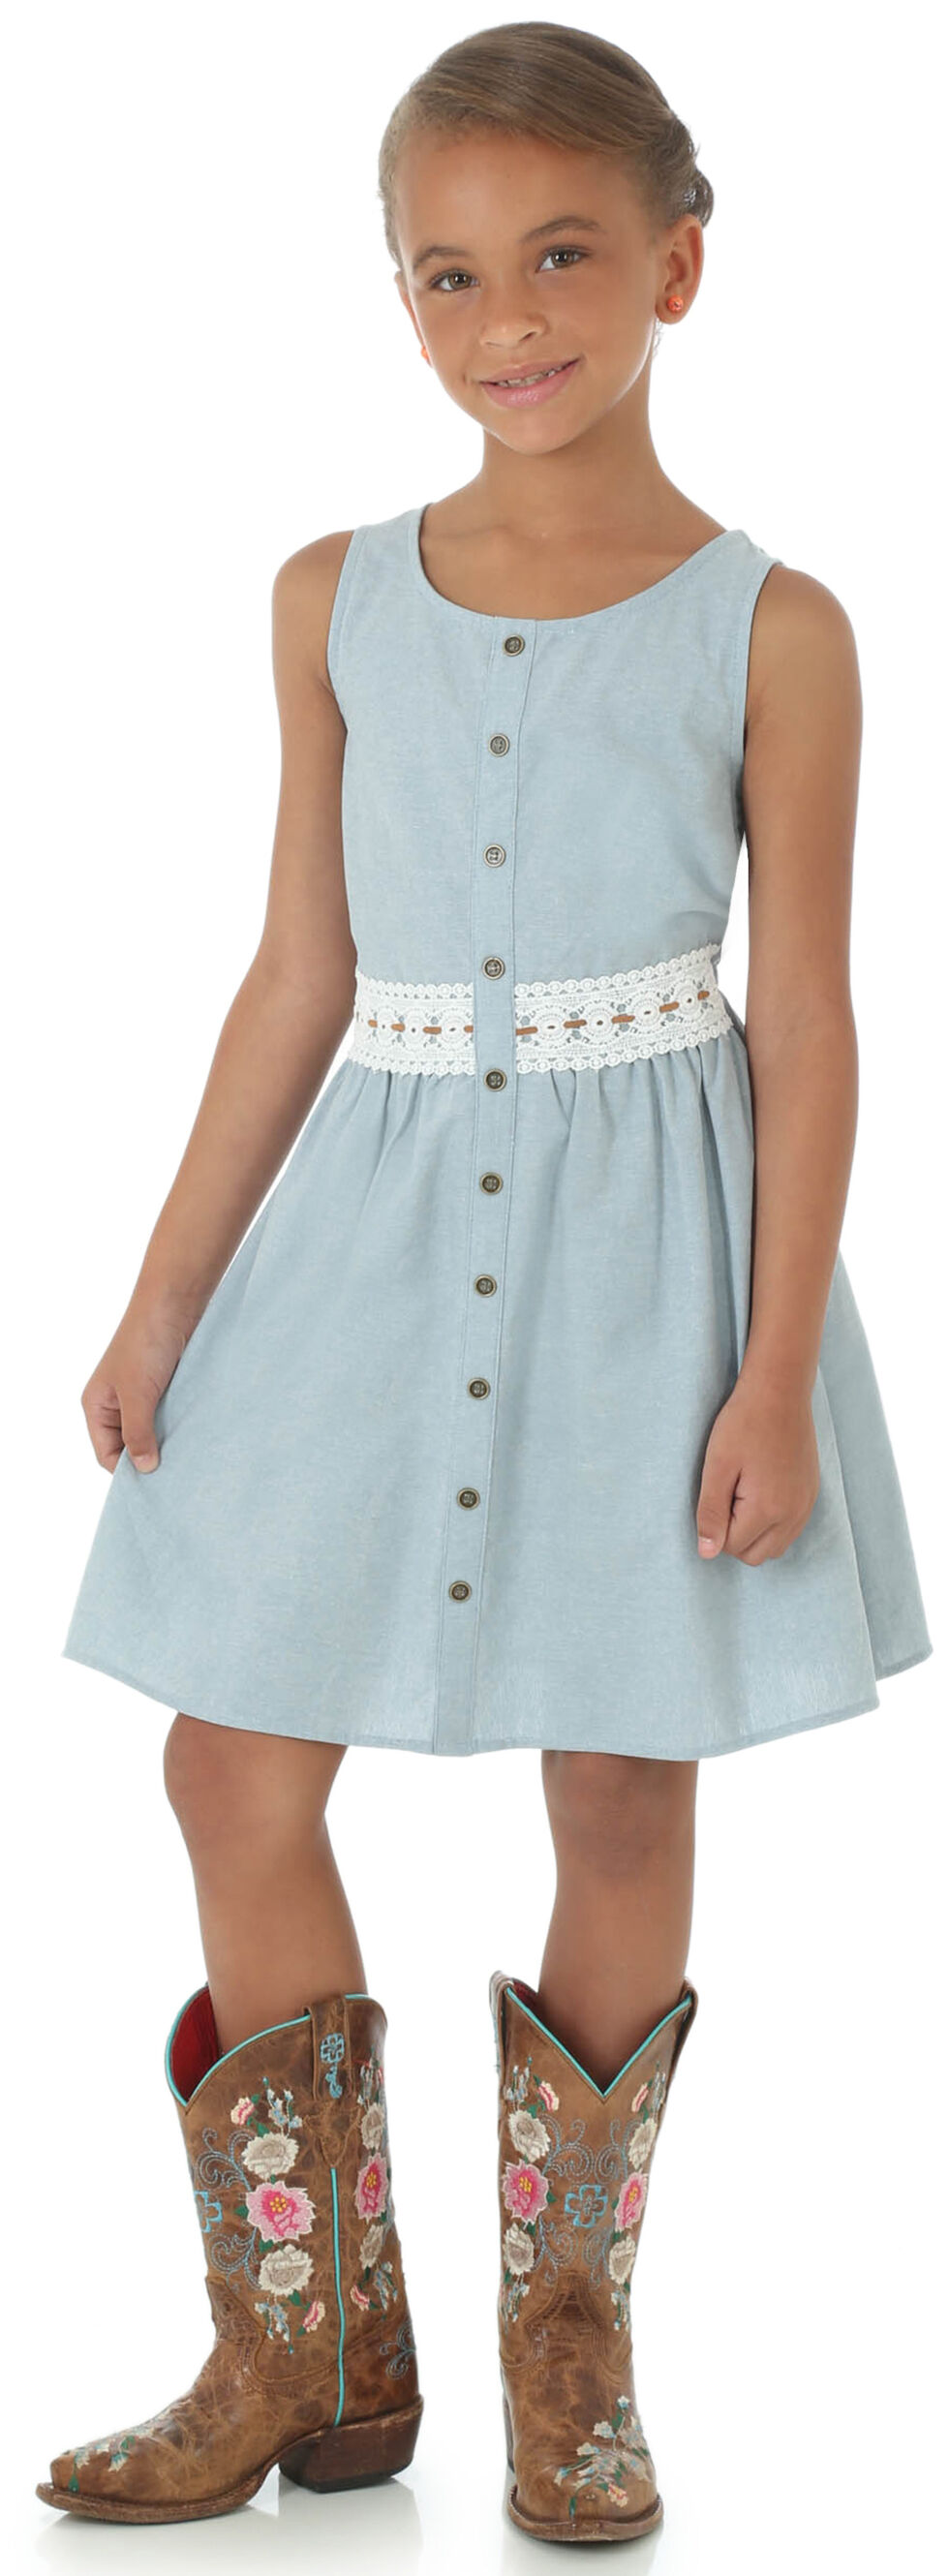 Wrangler Girls' Sleeveless Button Placket Crocheted Trim Dress, Blue, hi-res